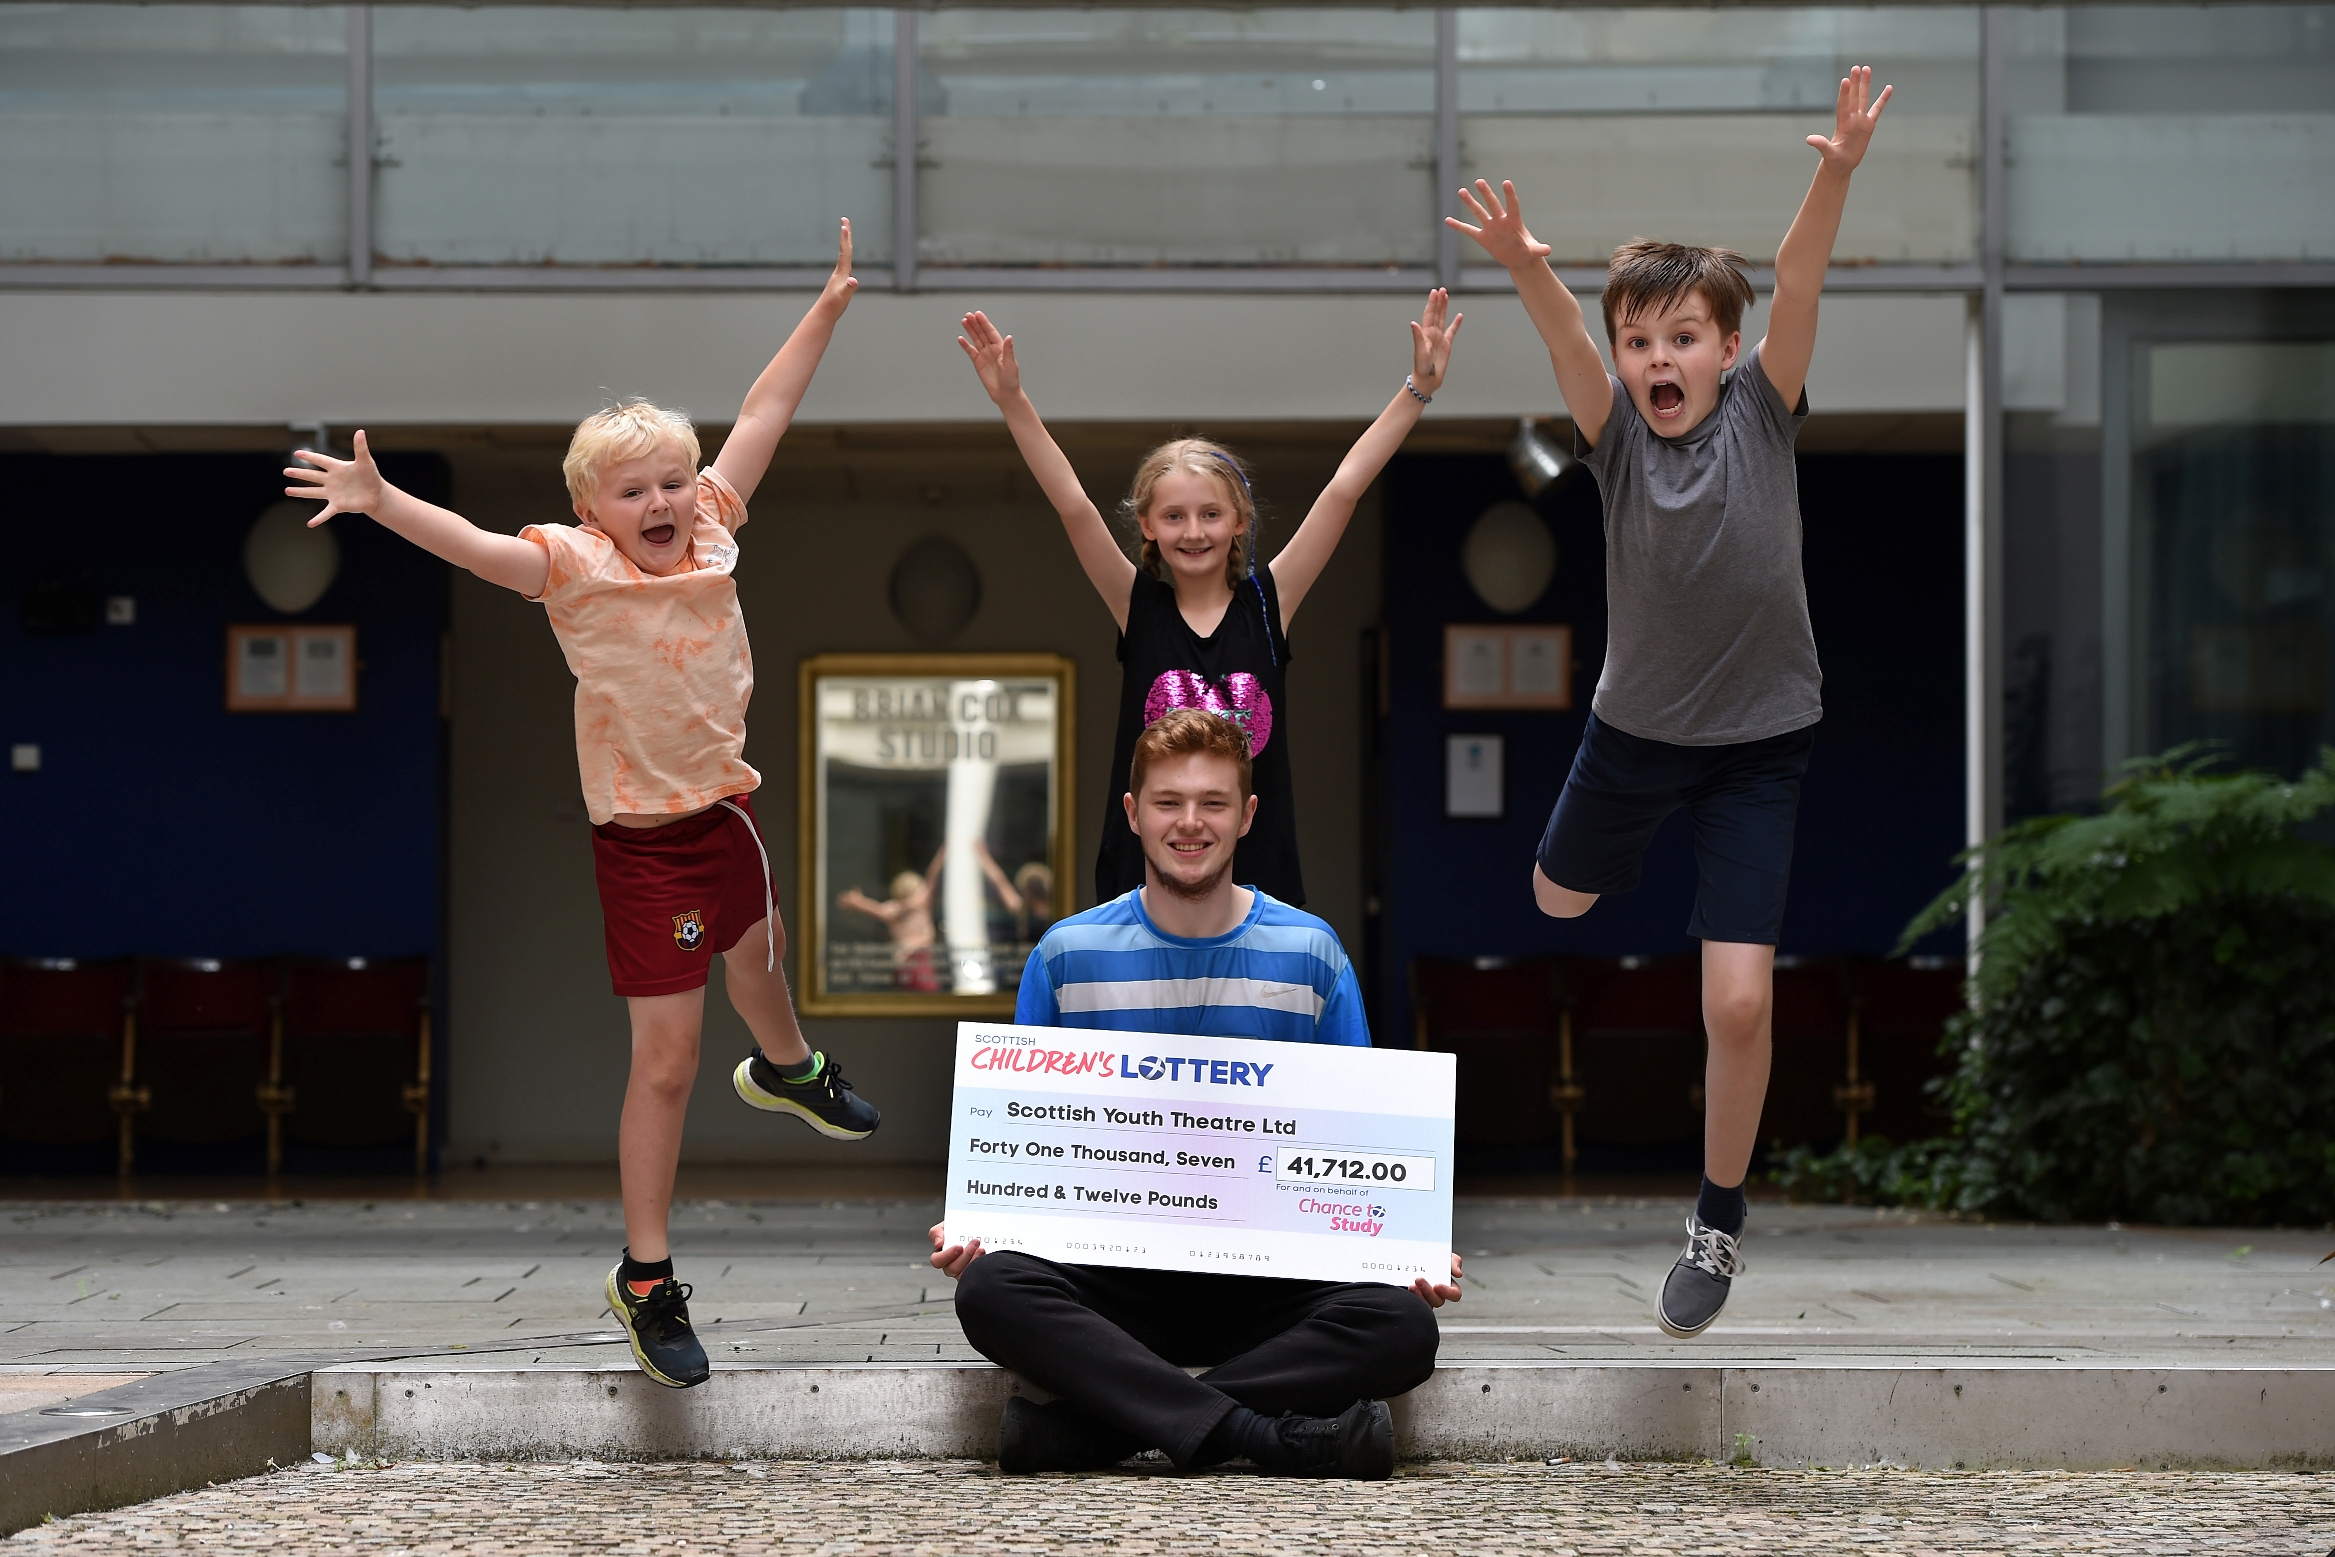 Scottish Youth Theatre reaches out to disadvantaged youth